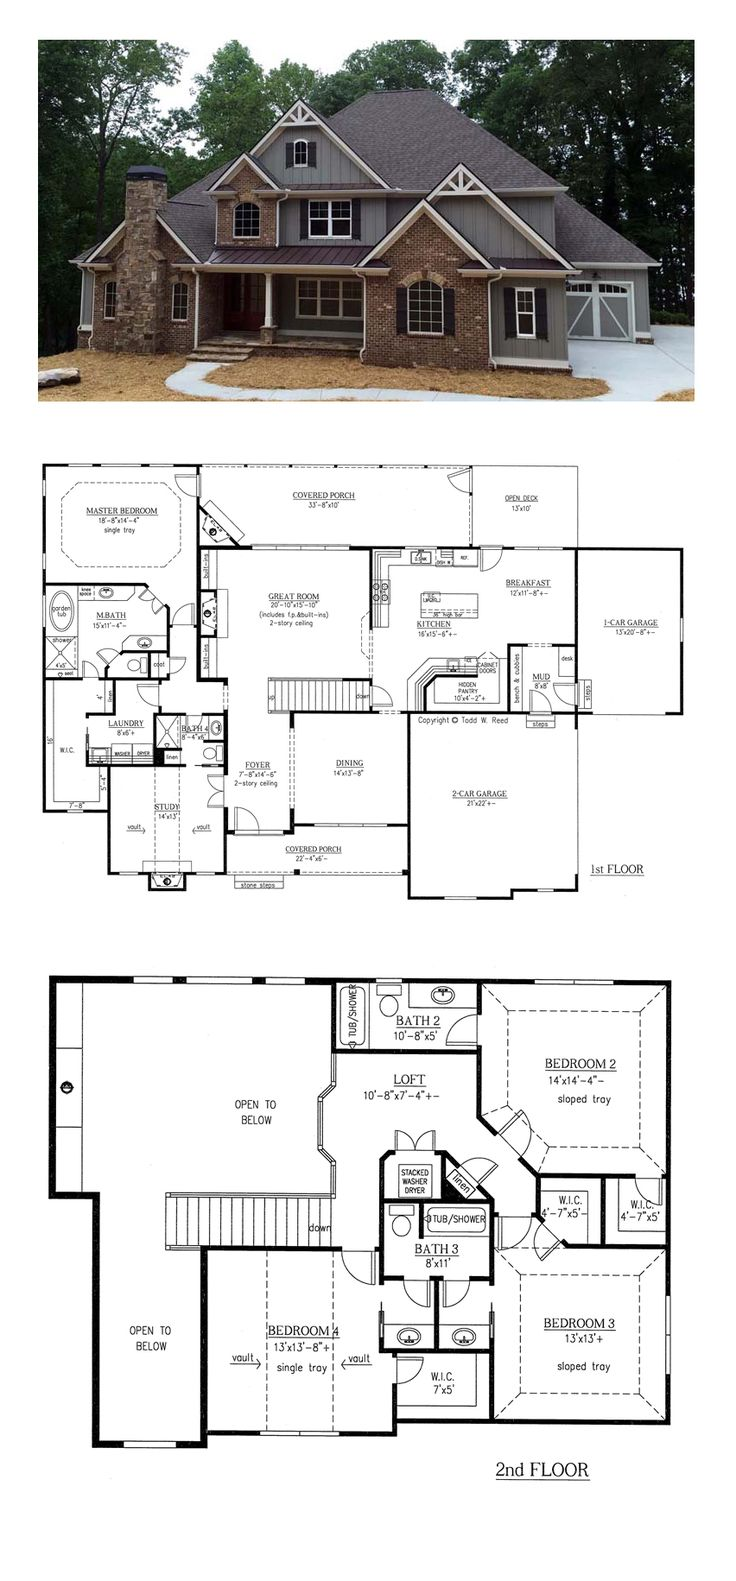 French Country House Plan 50263   Total Living Area  3290 sq  ft   4     French Country House Plan 50263   Total Living Area  3290 sq  ft   4  bedrooms and 4 bathrooms   frenchcountry   Future Home   Pinterest   French  country